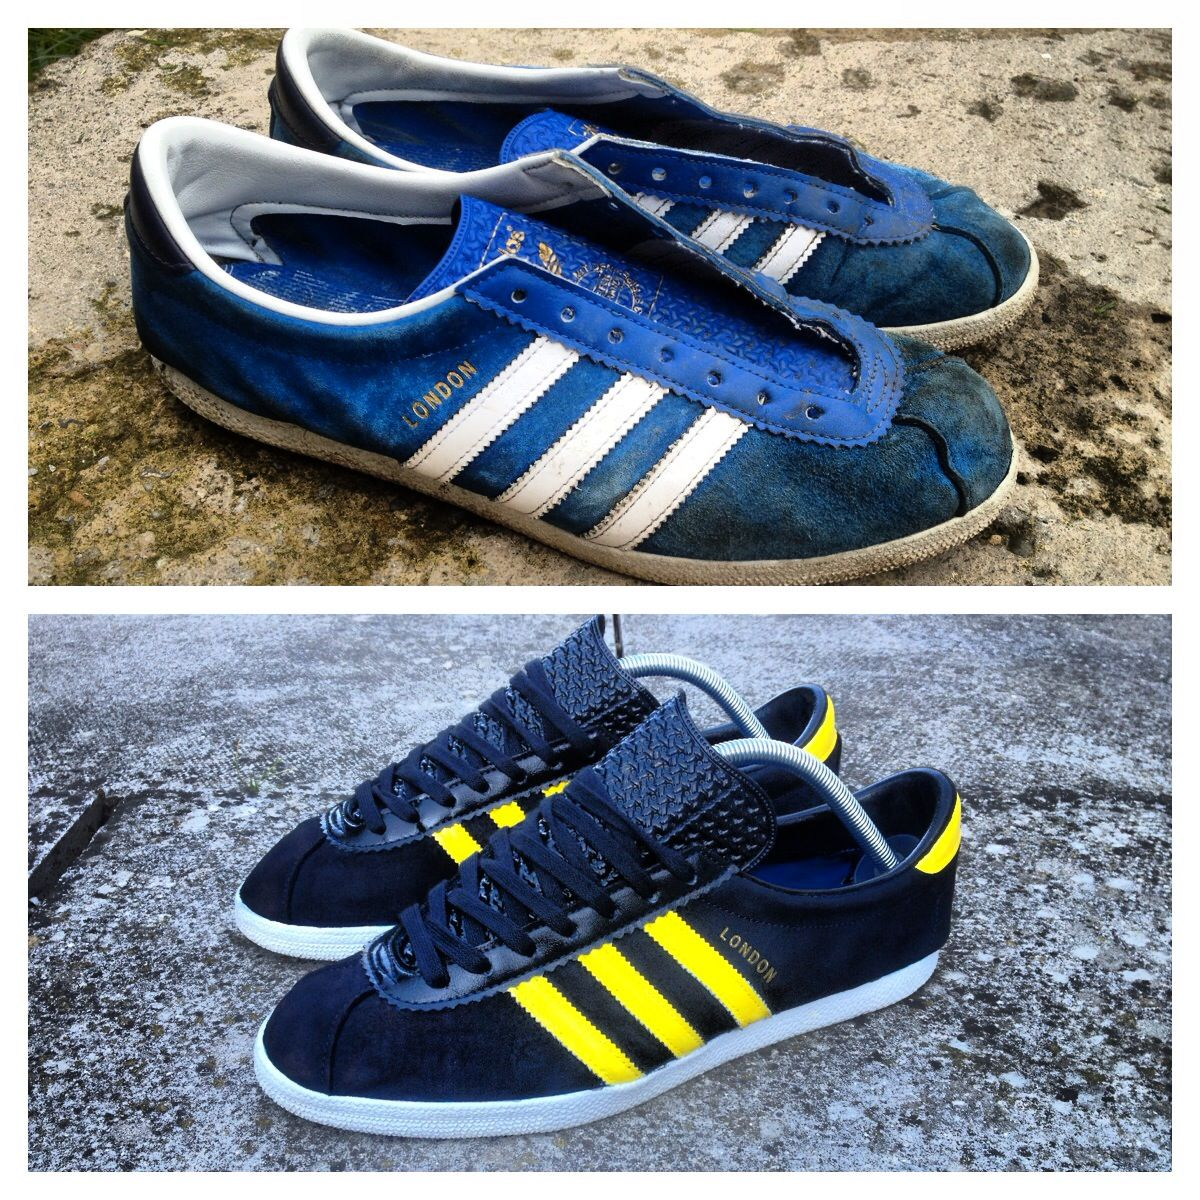 8f60bd2bbe56 A customised Adidas London in the Cardiff CW Adidas Samba